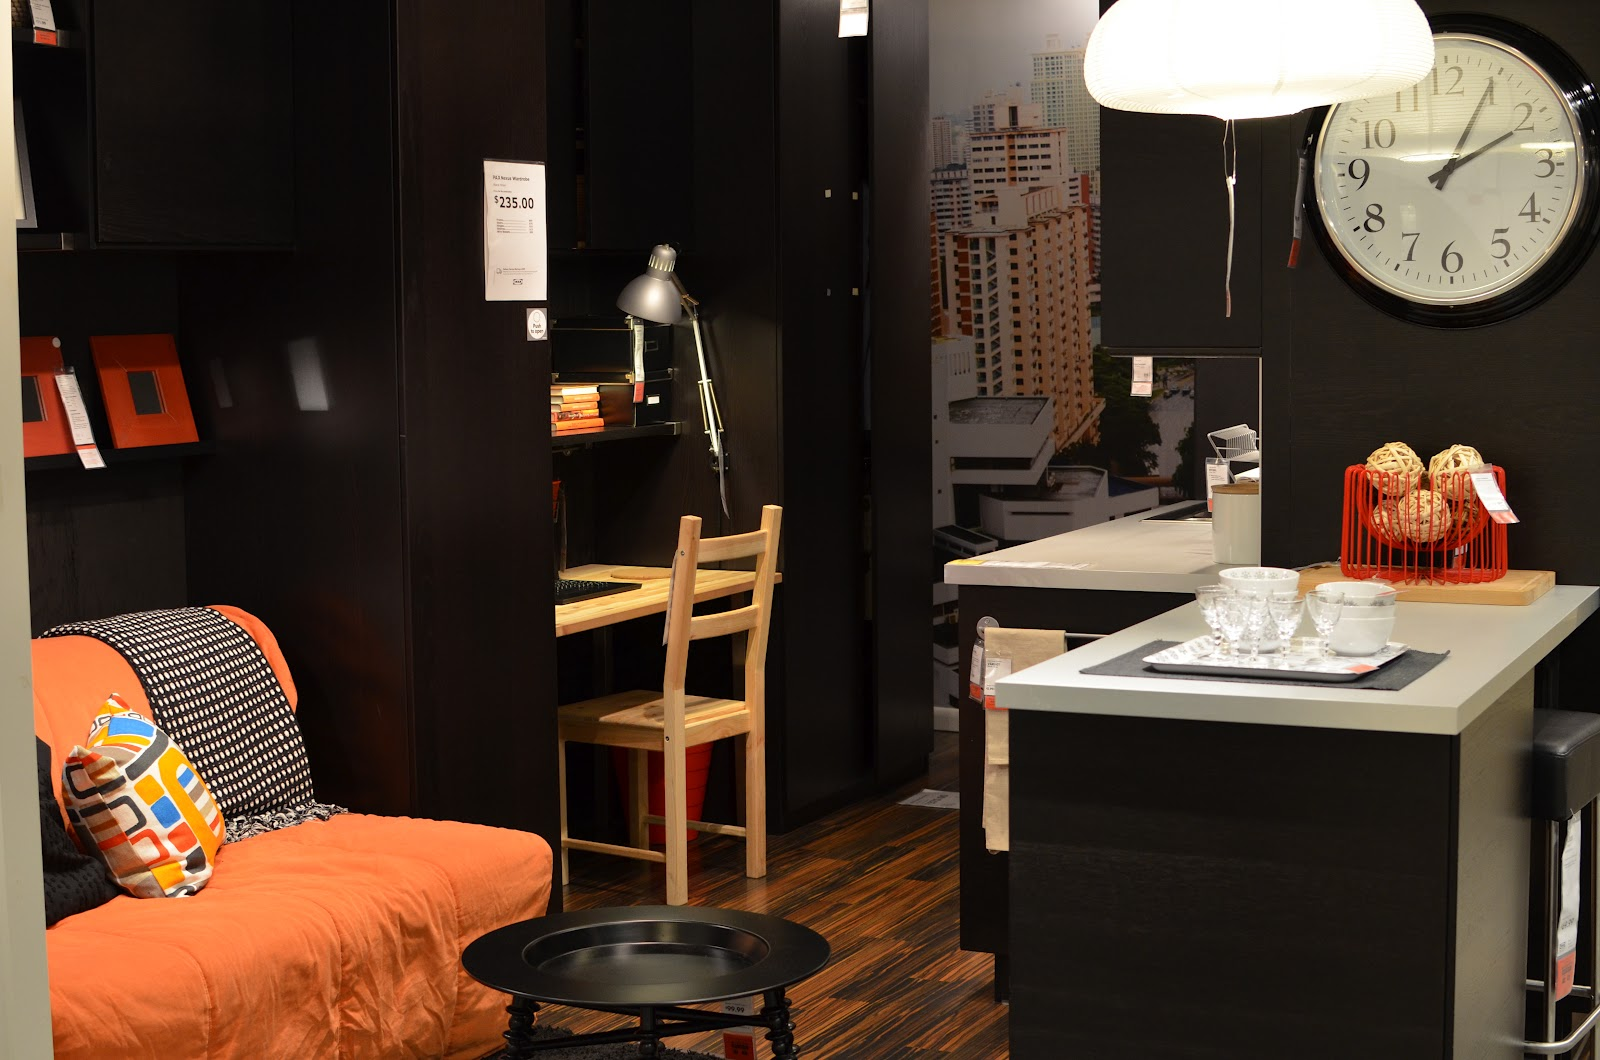 IKEA Has A Lot Of Areas Set Up As Rooms So You Can Sort See How Room Might Look With Their Furnishings This Would Be Great For Super Compact